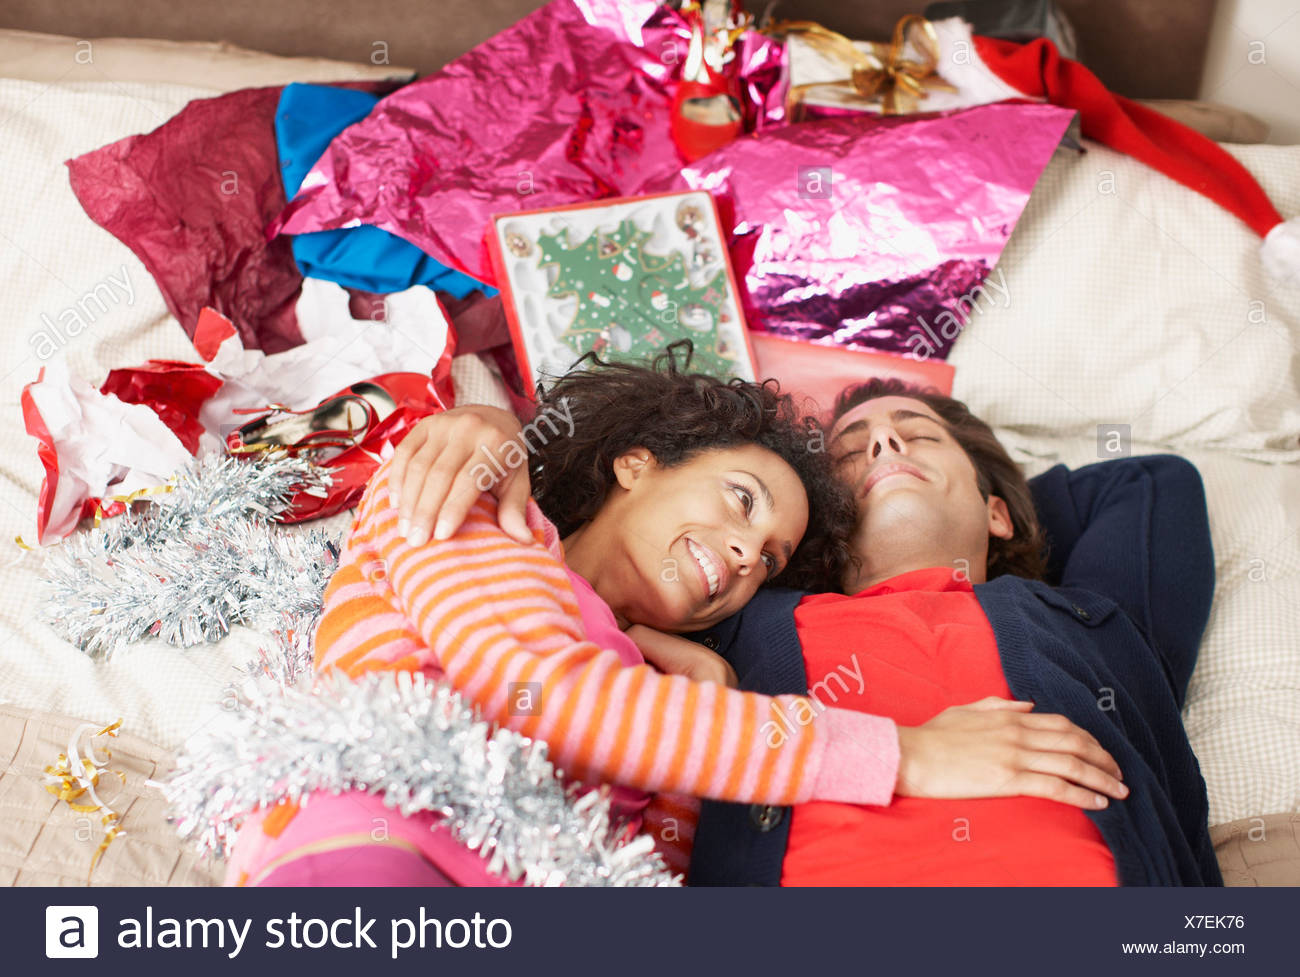 Couple hugging on bed with Christmas gifts - Stock Image